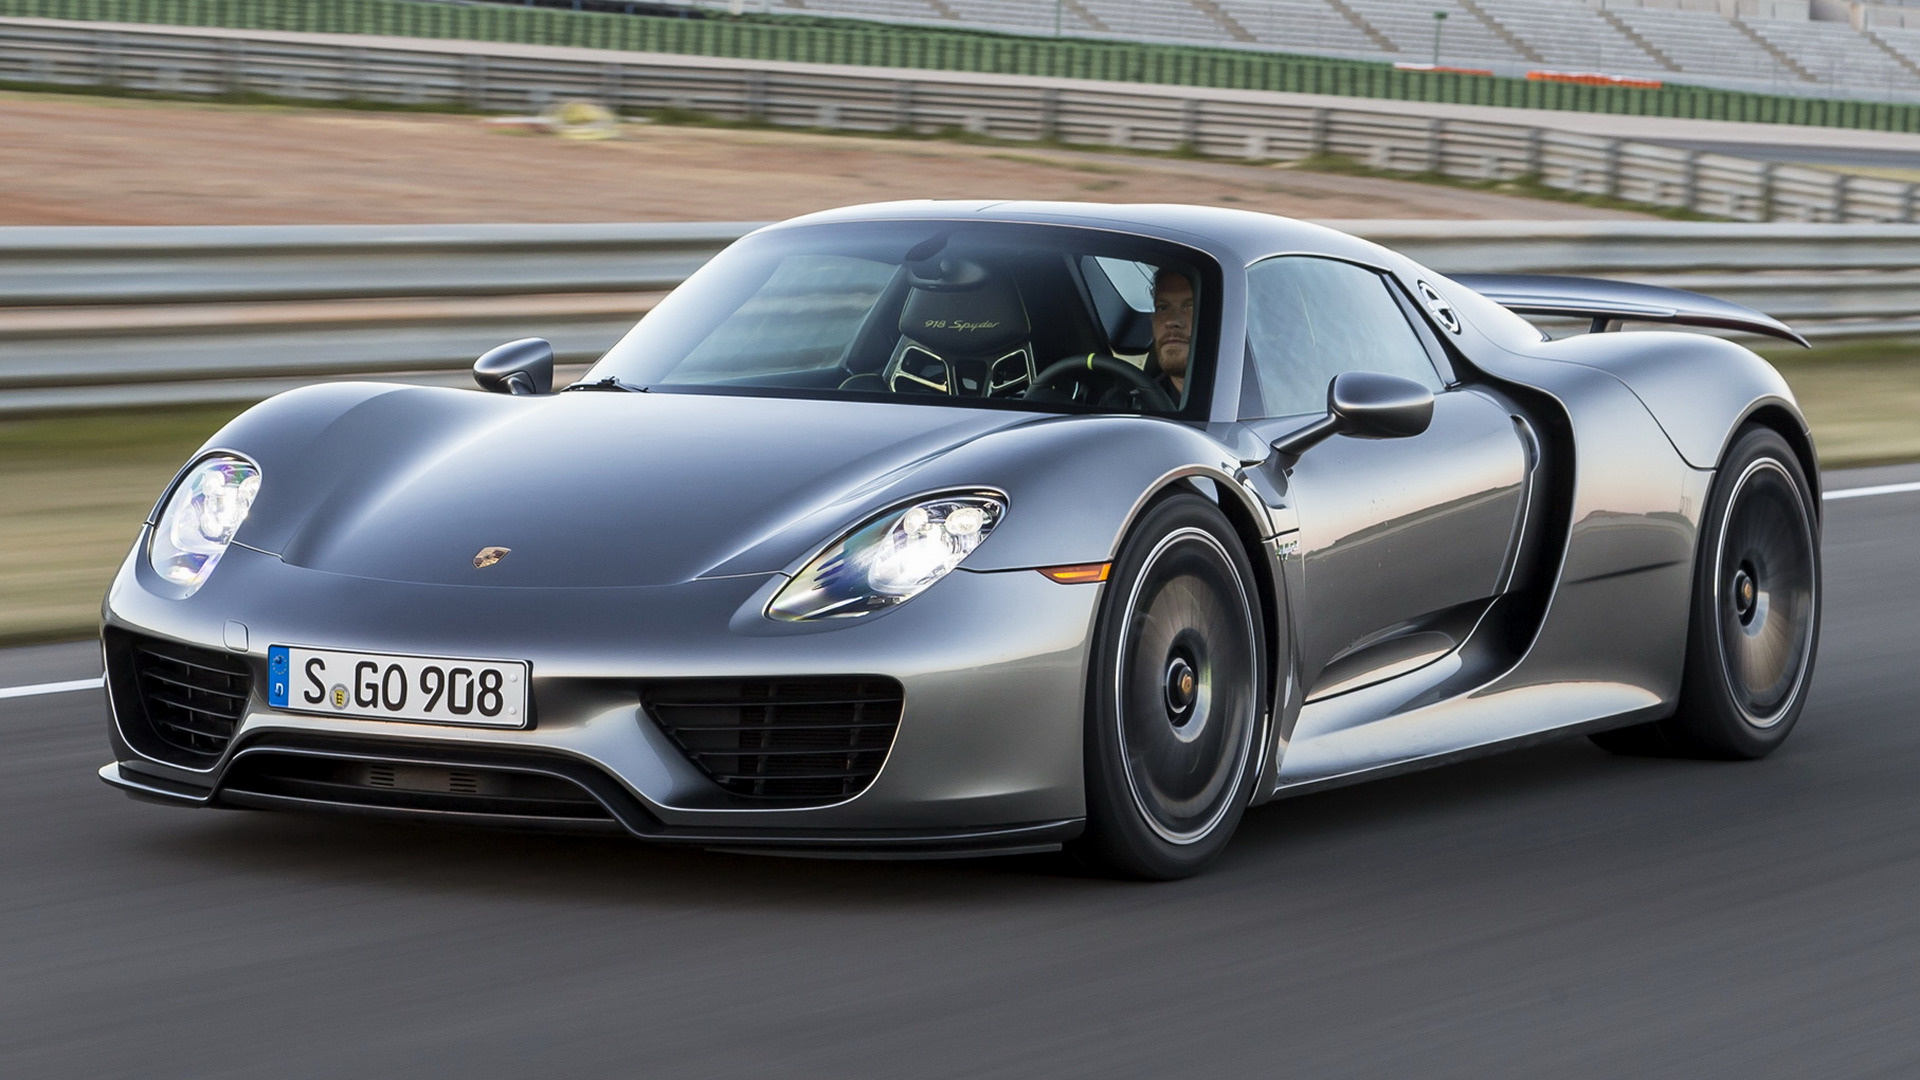 hd 169 wide 85 porsche 918 spyder - Porsche 918 Spyder Wallpaper